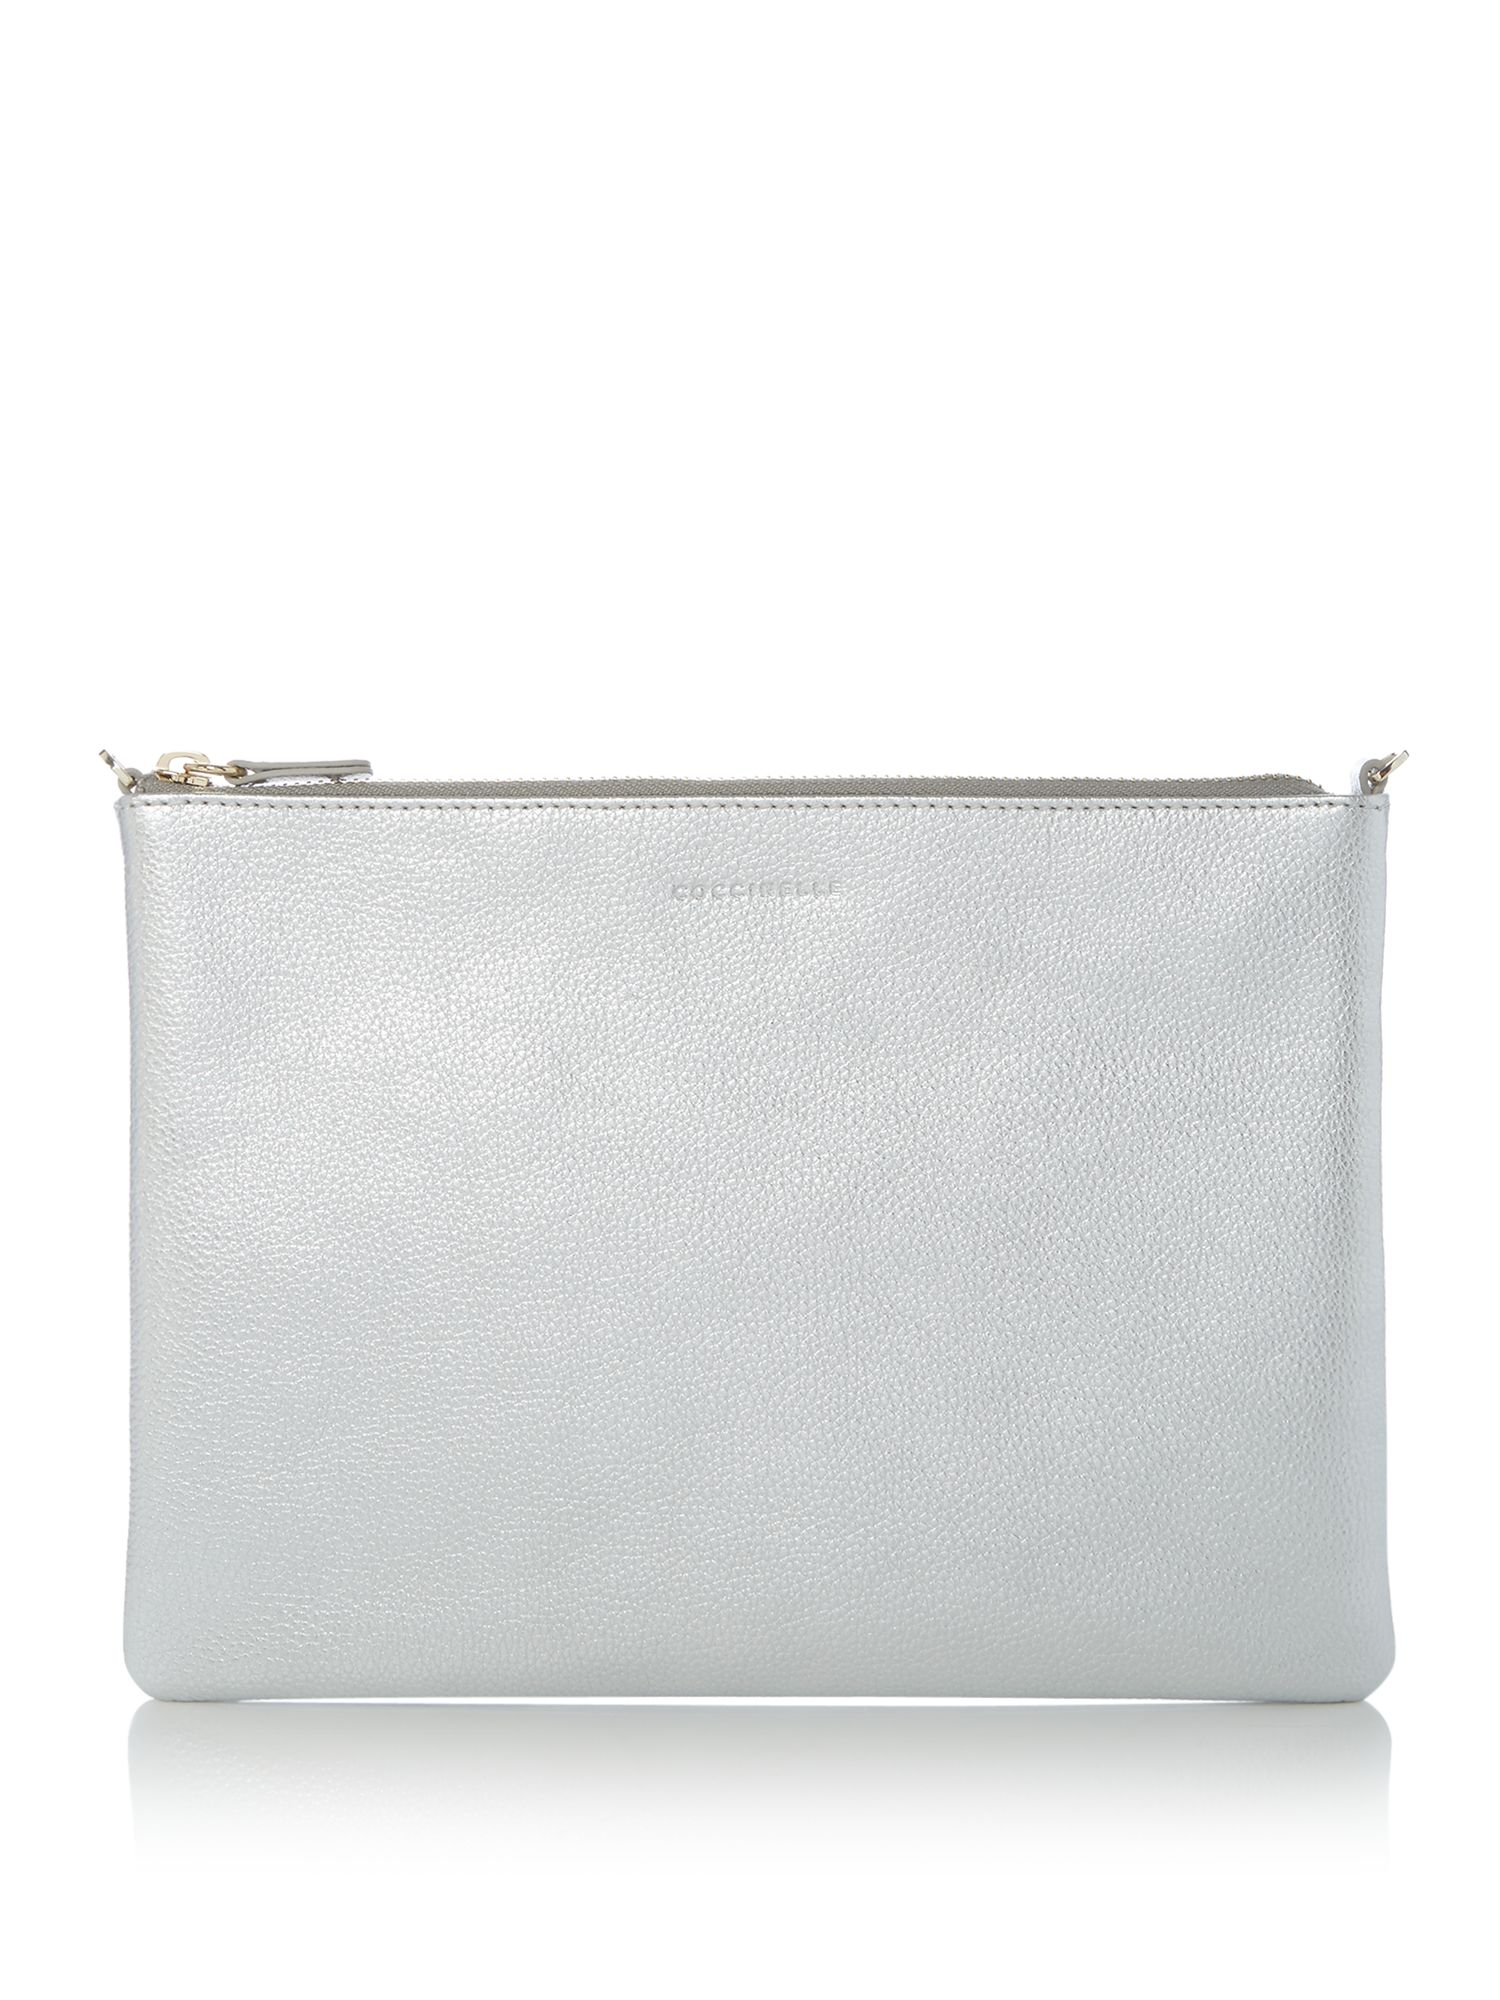 Coccinelle Best soft leather cross body pouchette, Silver